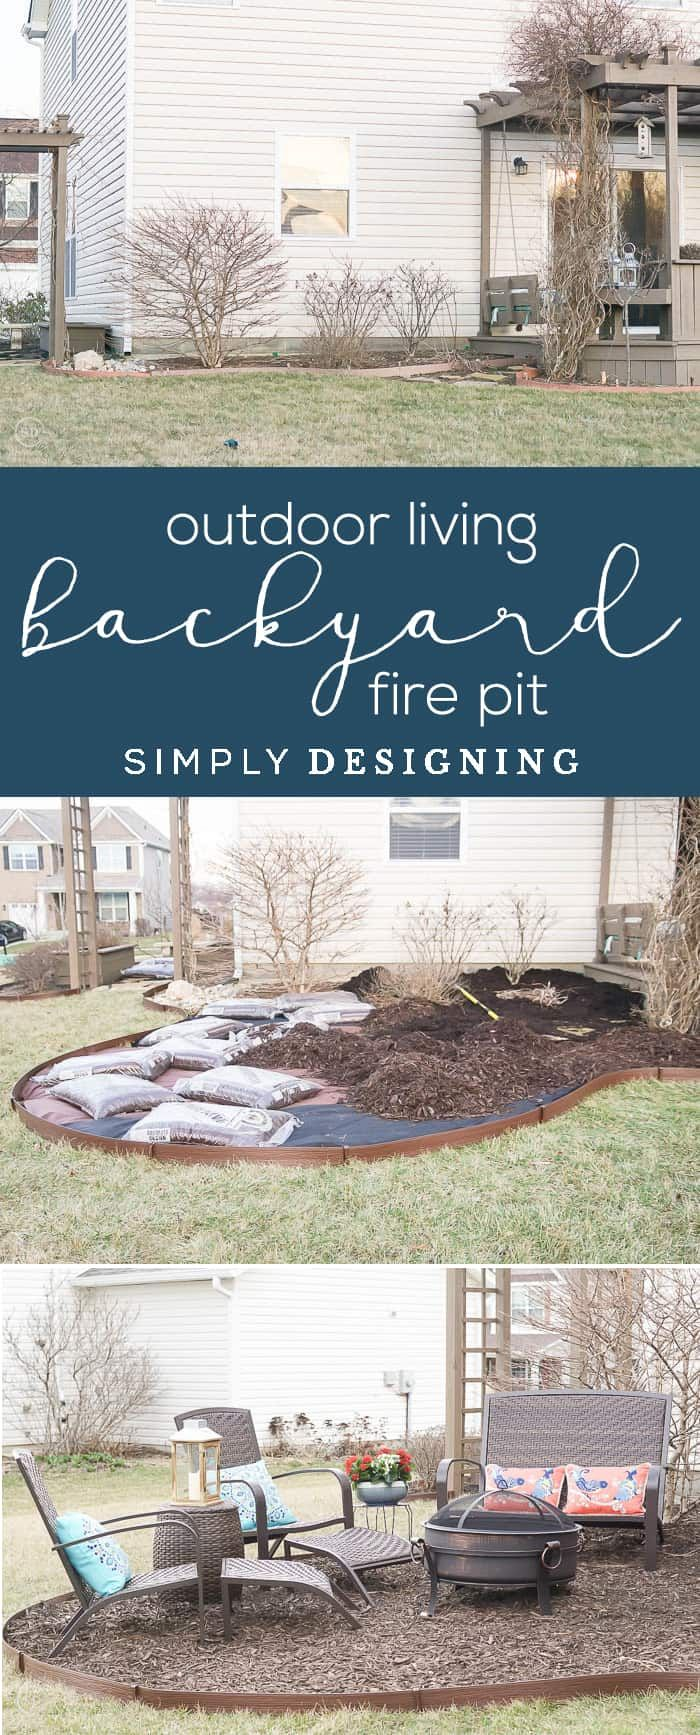 Outdoor Living with an Easy Backyard Fire Pit - easily create more outdoor living space | #ad #BHGLiveBetter #BHGatWalmart